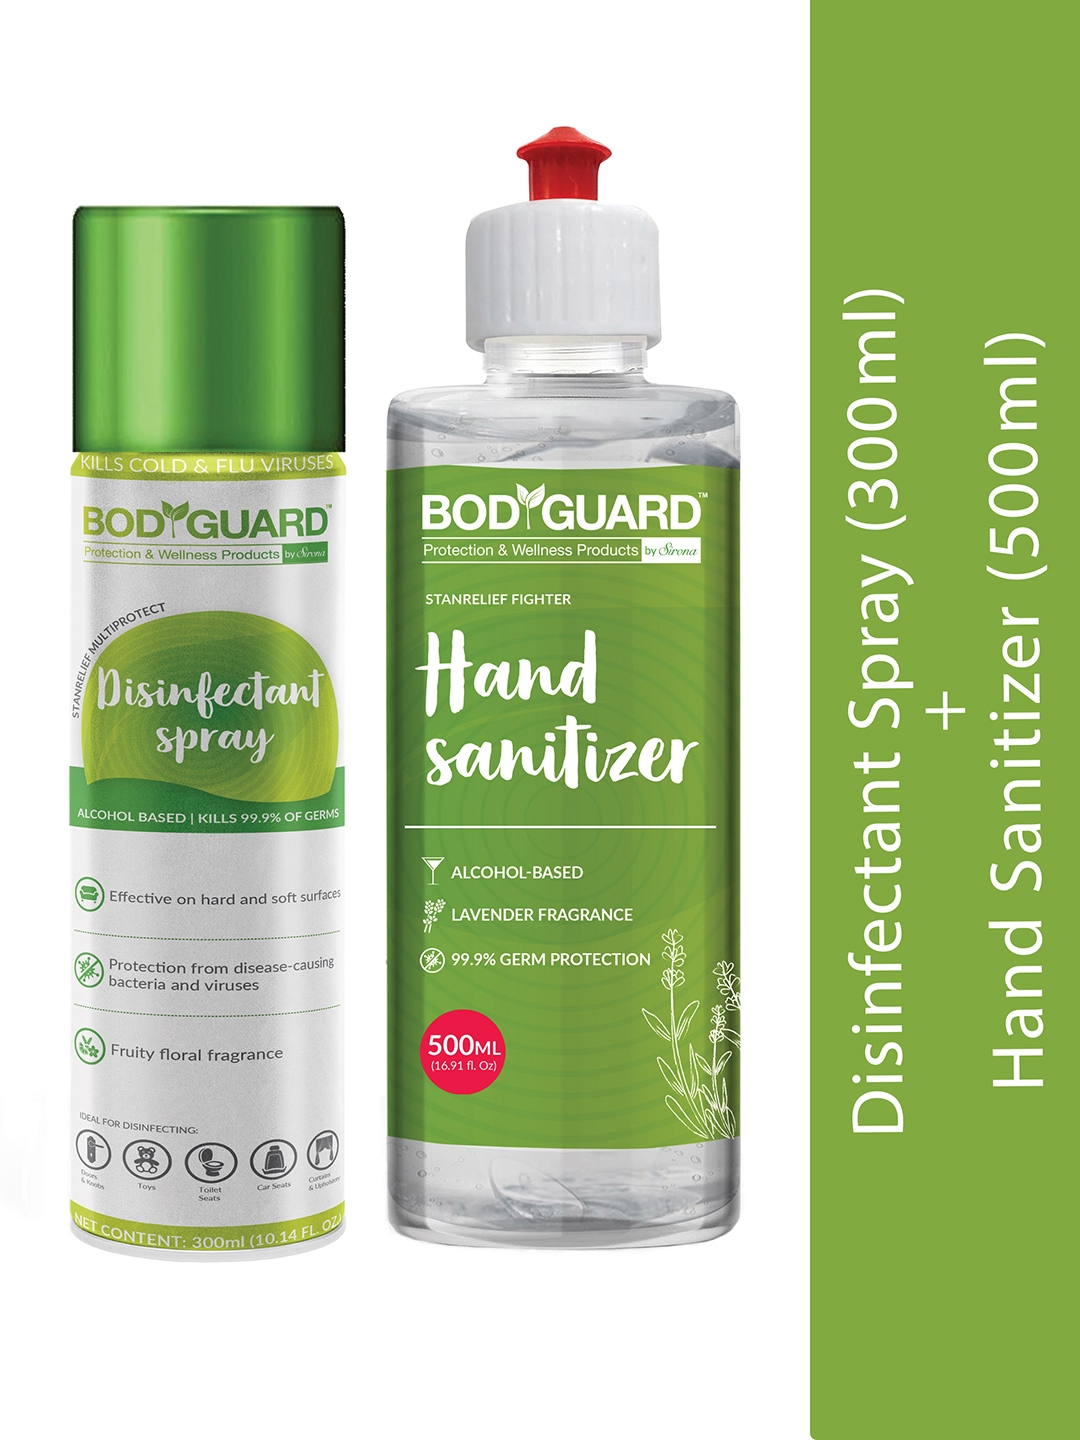 BOD GUARD Set of Green Alcohol Based Disinfectant Spray   300 ml, Hand Sanitizer   500 ml